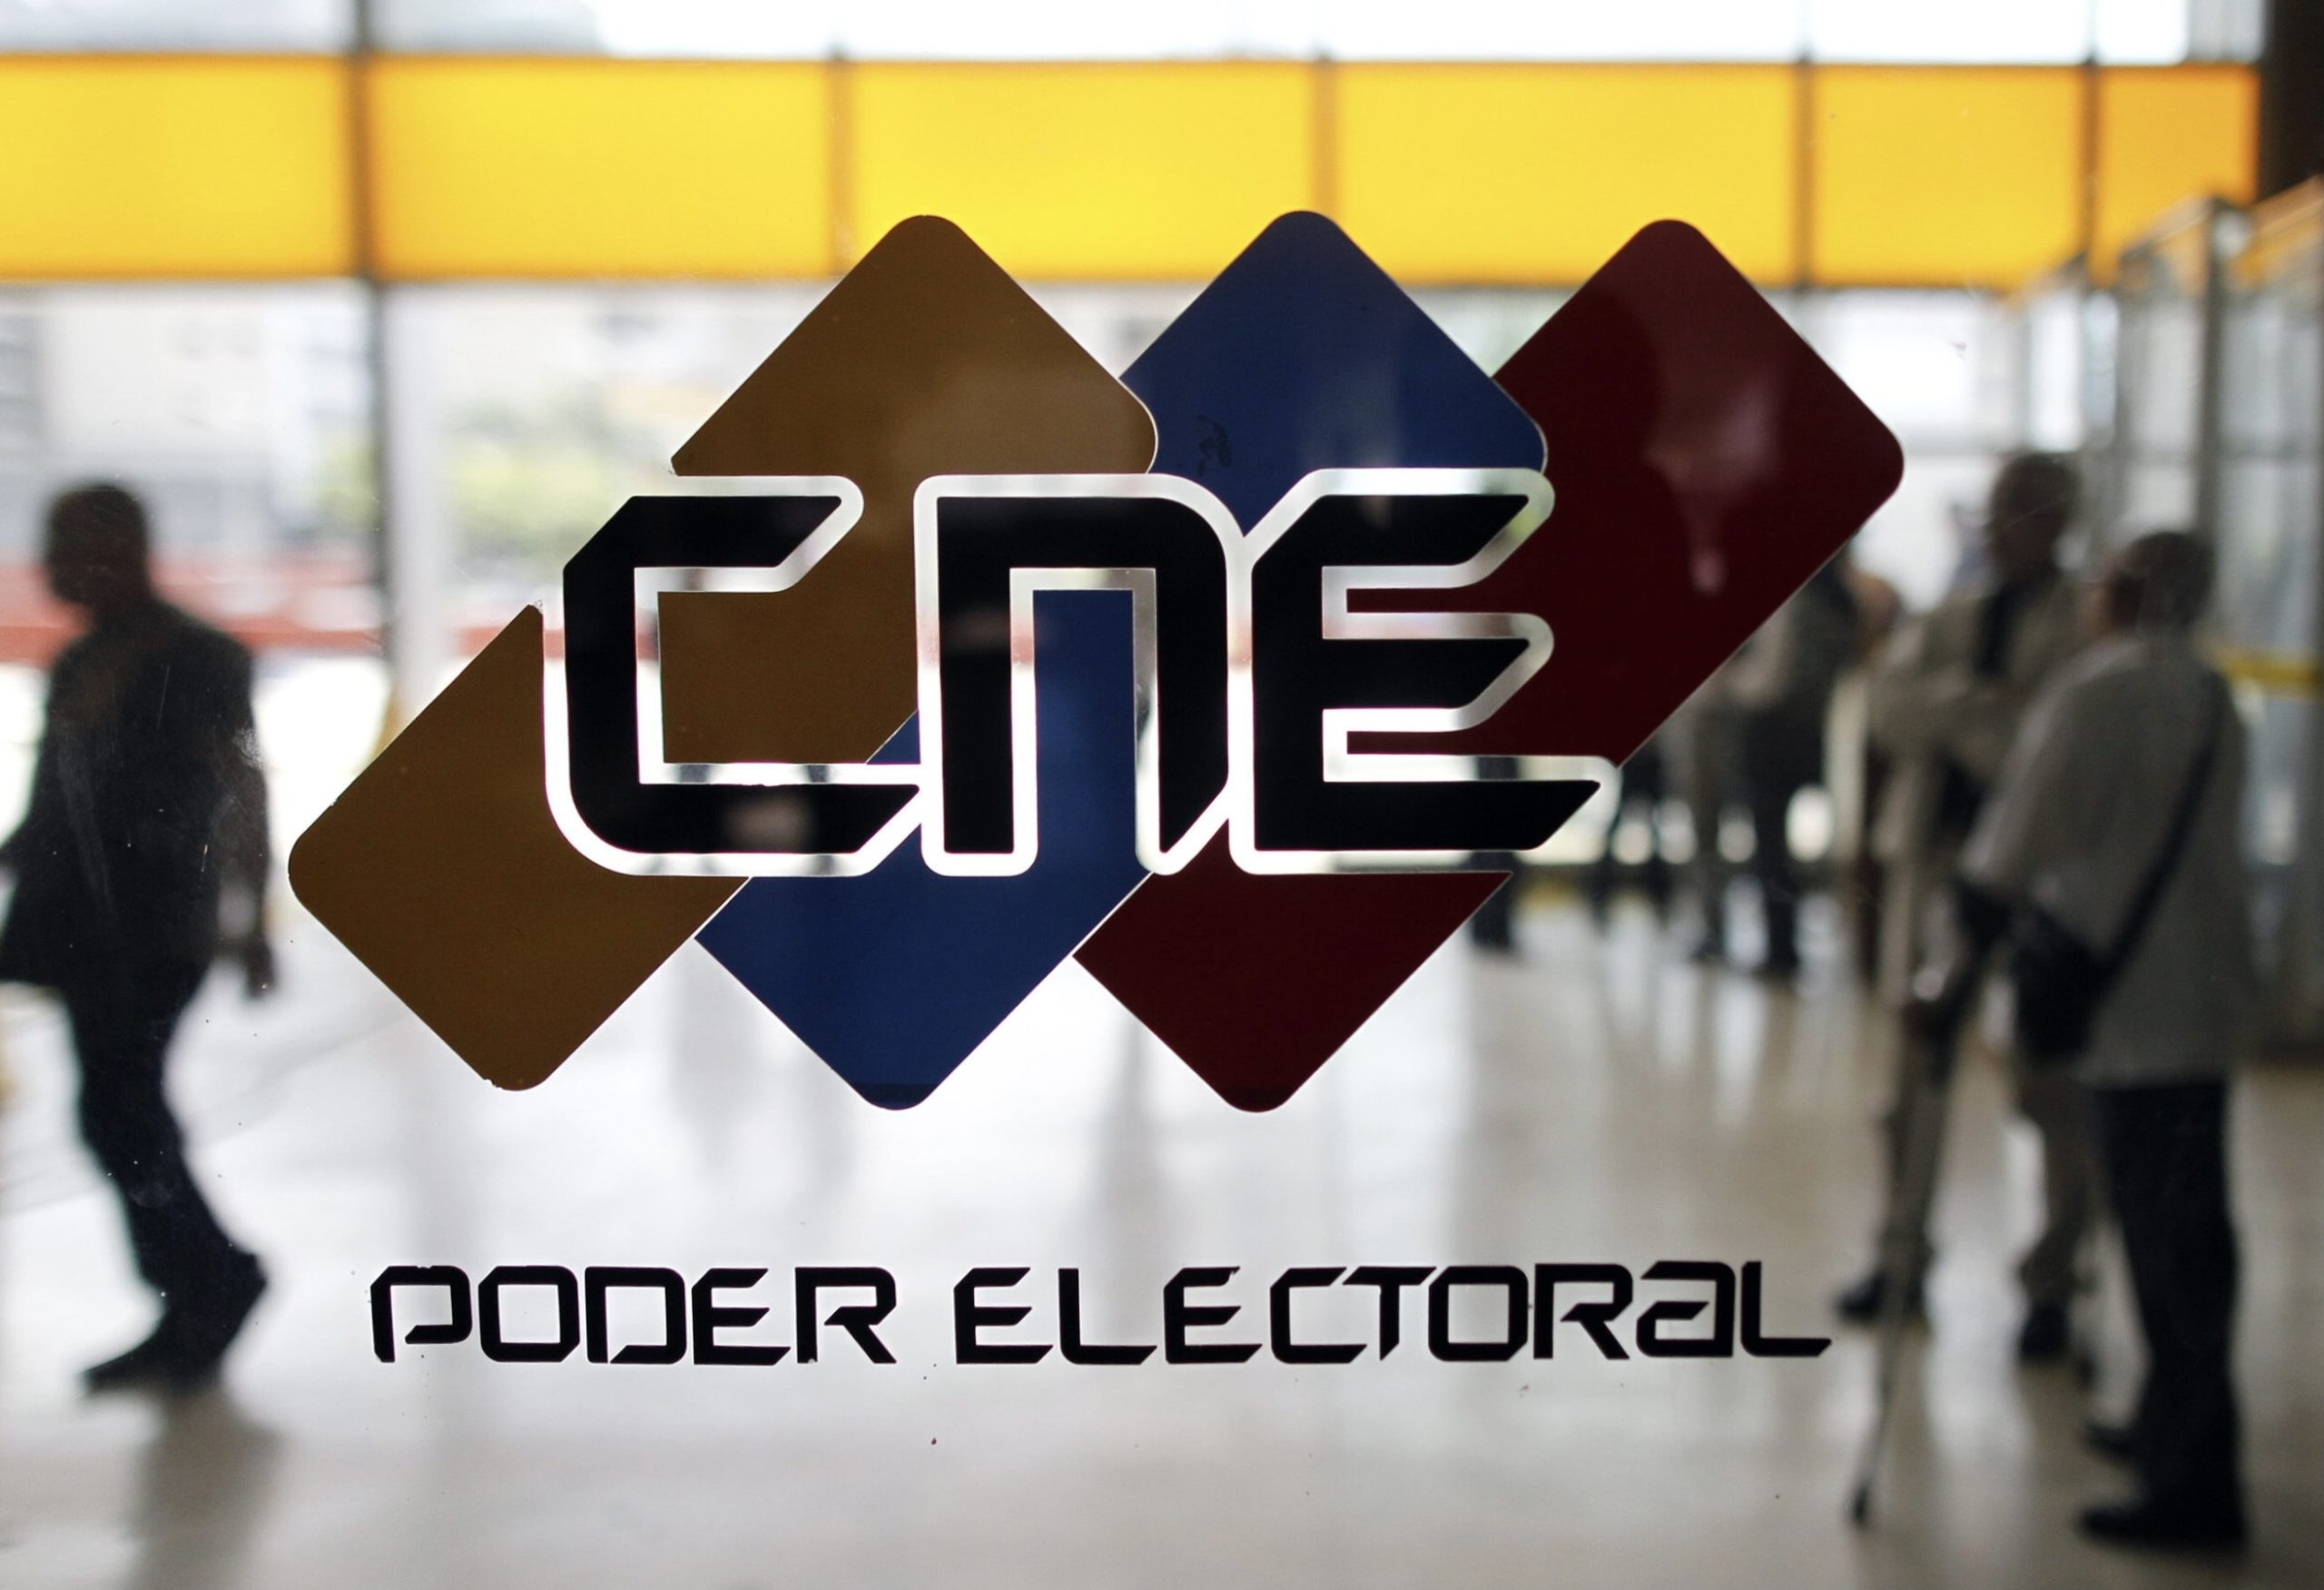 Venezuela Has a New Electoral Board. Don't Get Too Excited